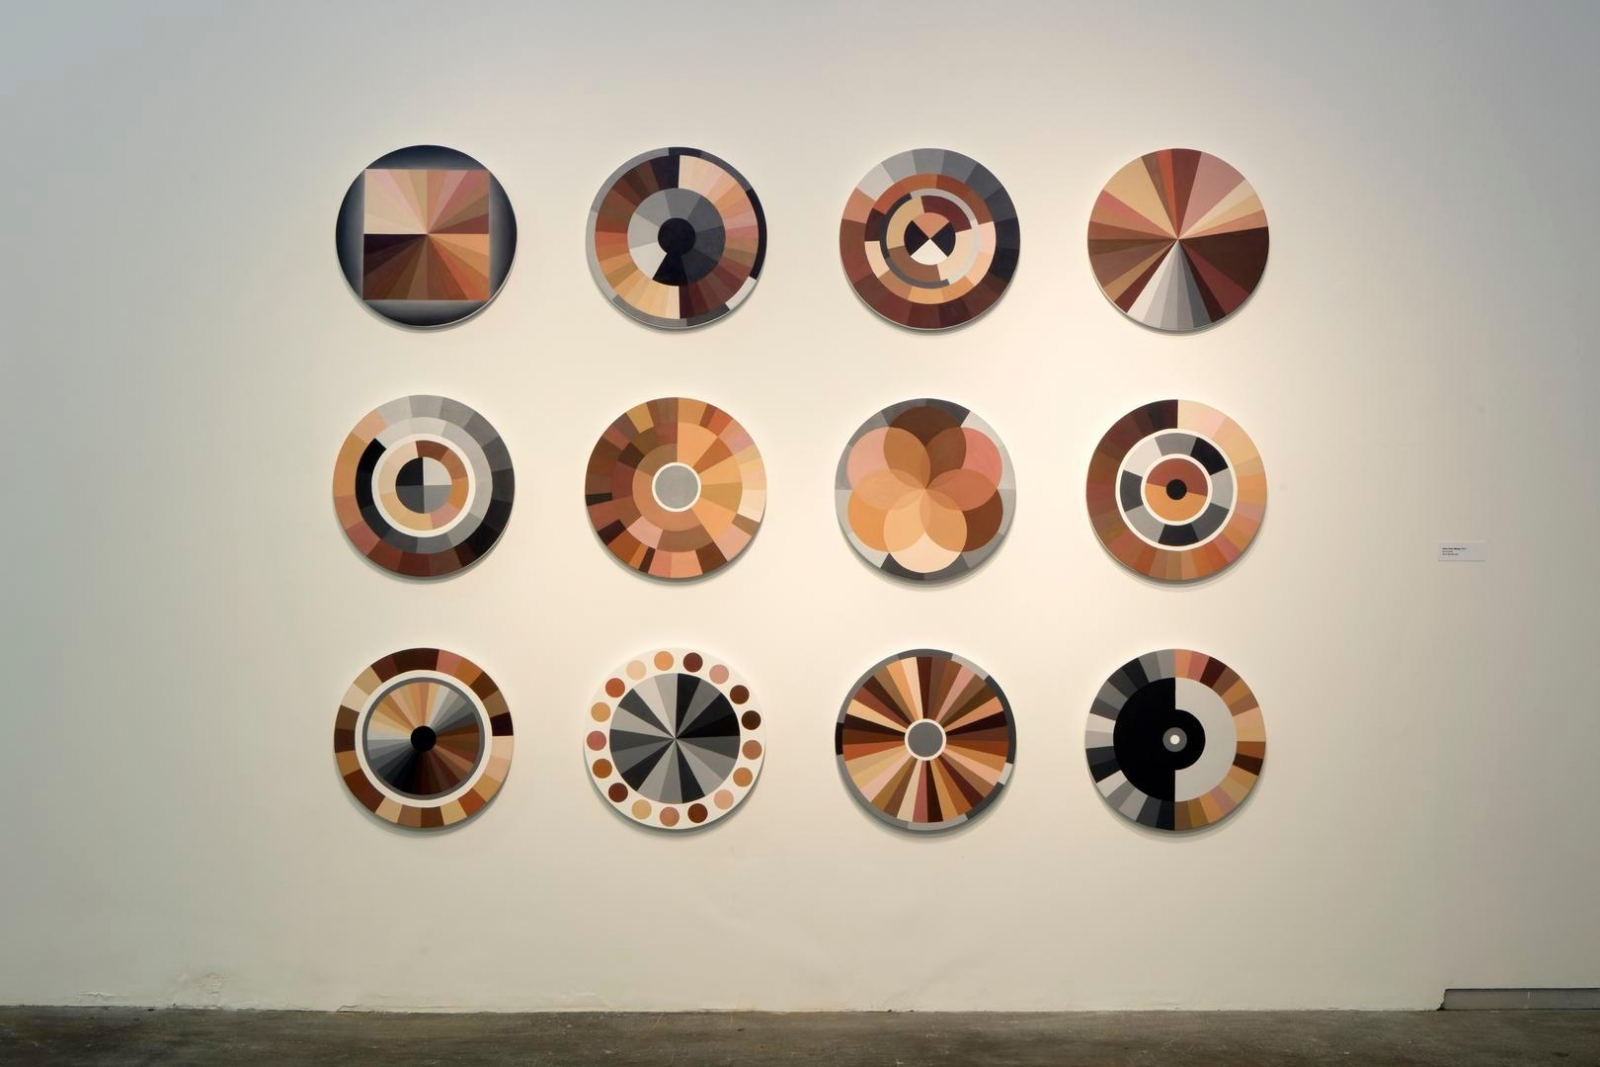 Photo: Kevin Todora. Courtesy the artist, Dallas Contemporary, Lehmann Maupin, New York and Hong Kong, and Galeria Fortes Vilaça